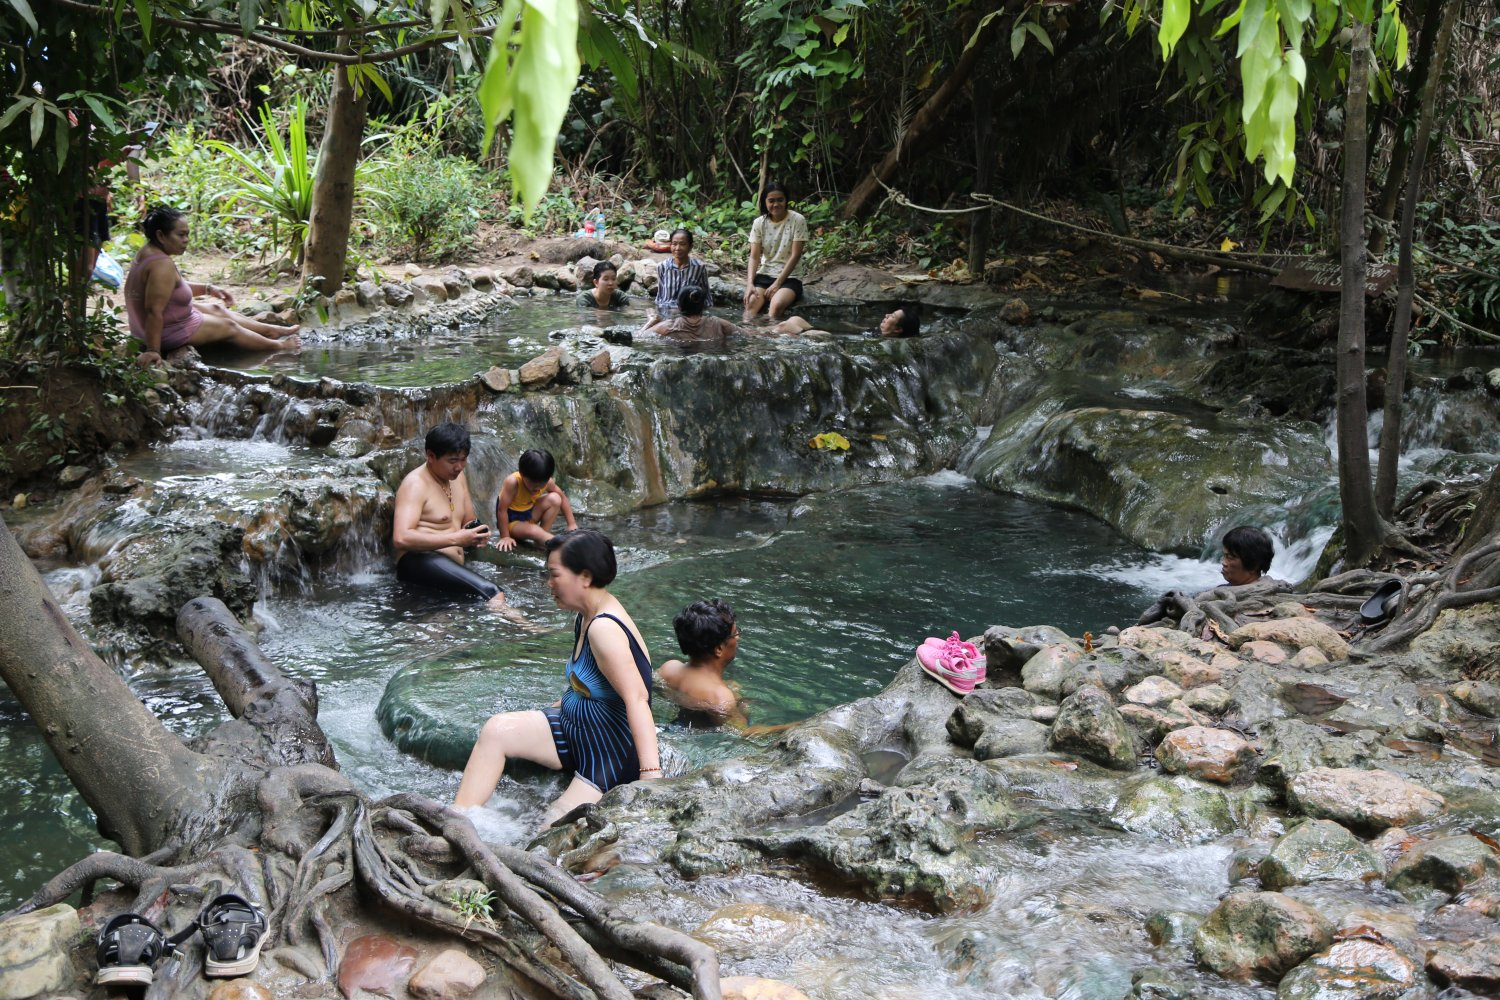 Enjoying the hot waters of the Thermal Stream